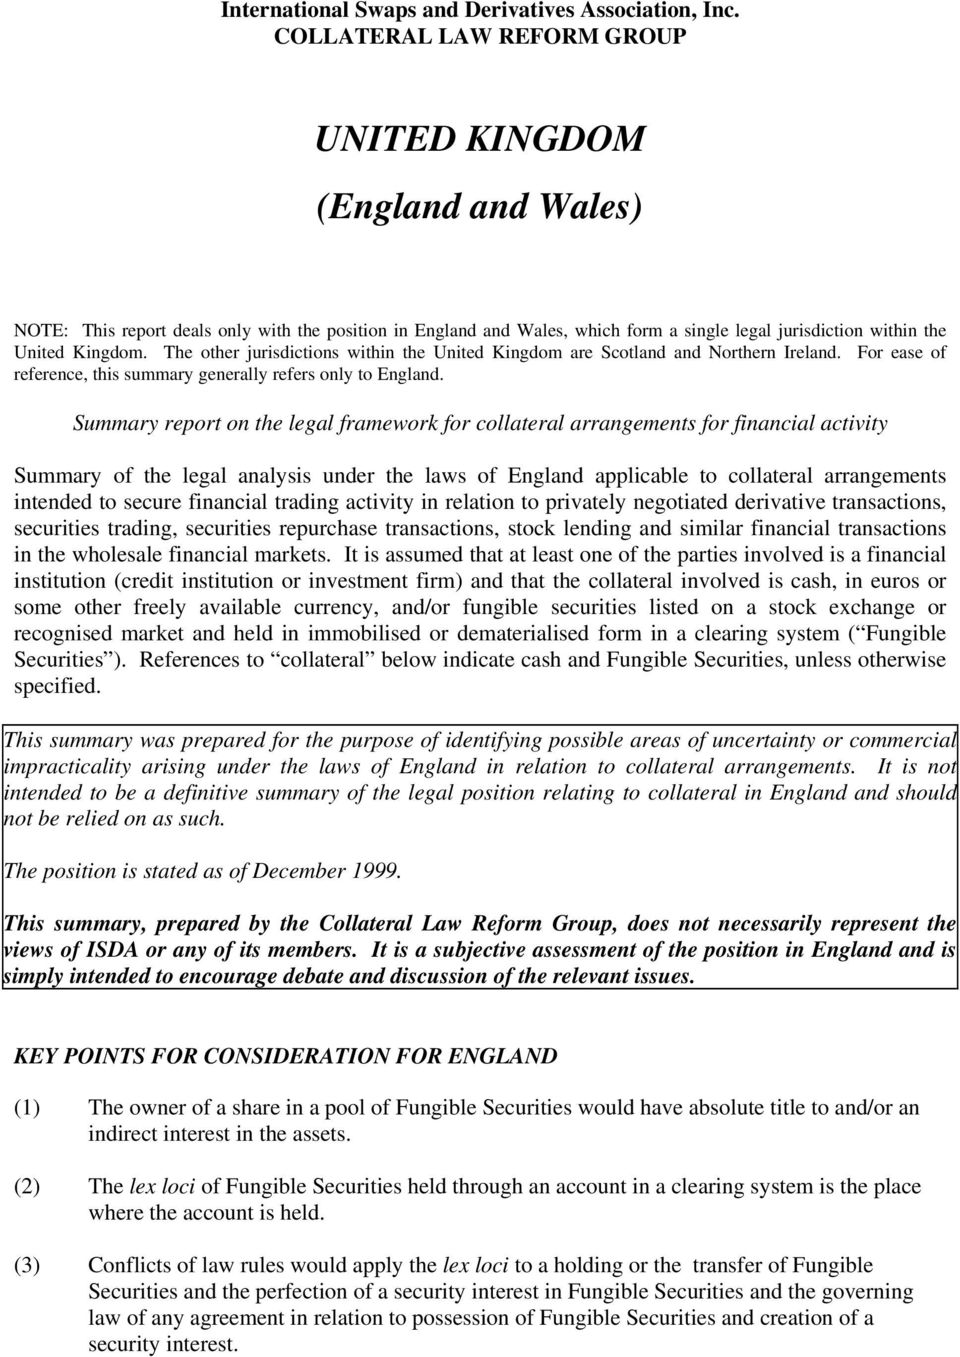 The other jurisdictions within the United Kingdom are Scotland and Northern Ireland. For ease of reference, this summary generally refers only to England.